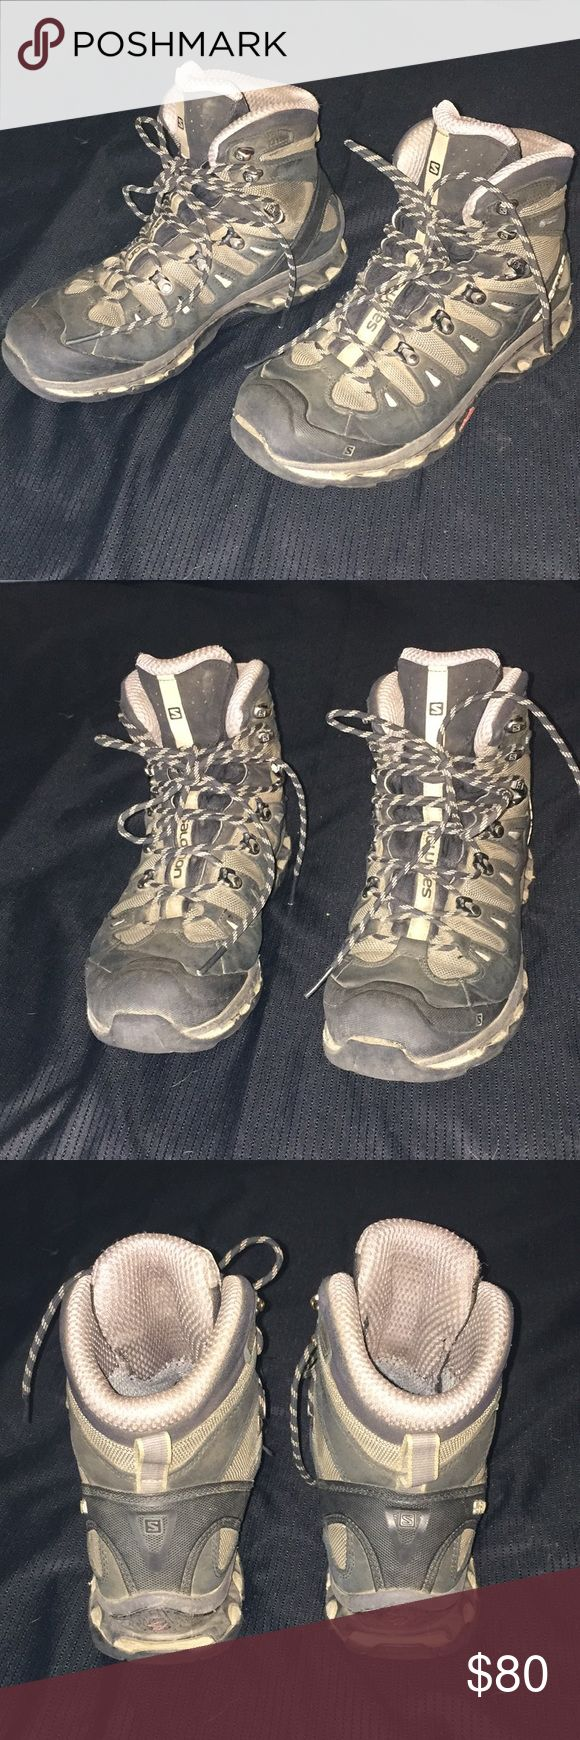 Salomon Hiking boots men's size 8 fits women's 10 Black and gray. Waterproof. Comfortable. Great Condition. Ortholite soles. With contagrip . Salomon Shoes Athletic Shoes